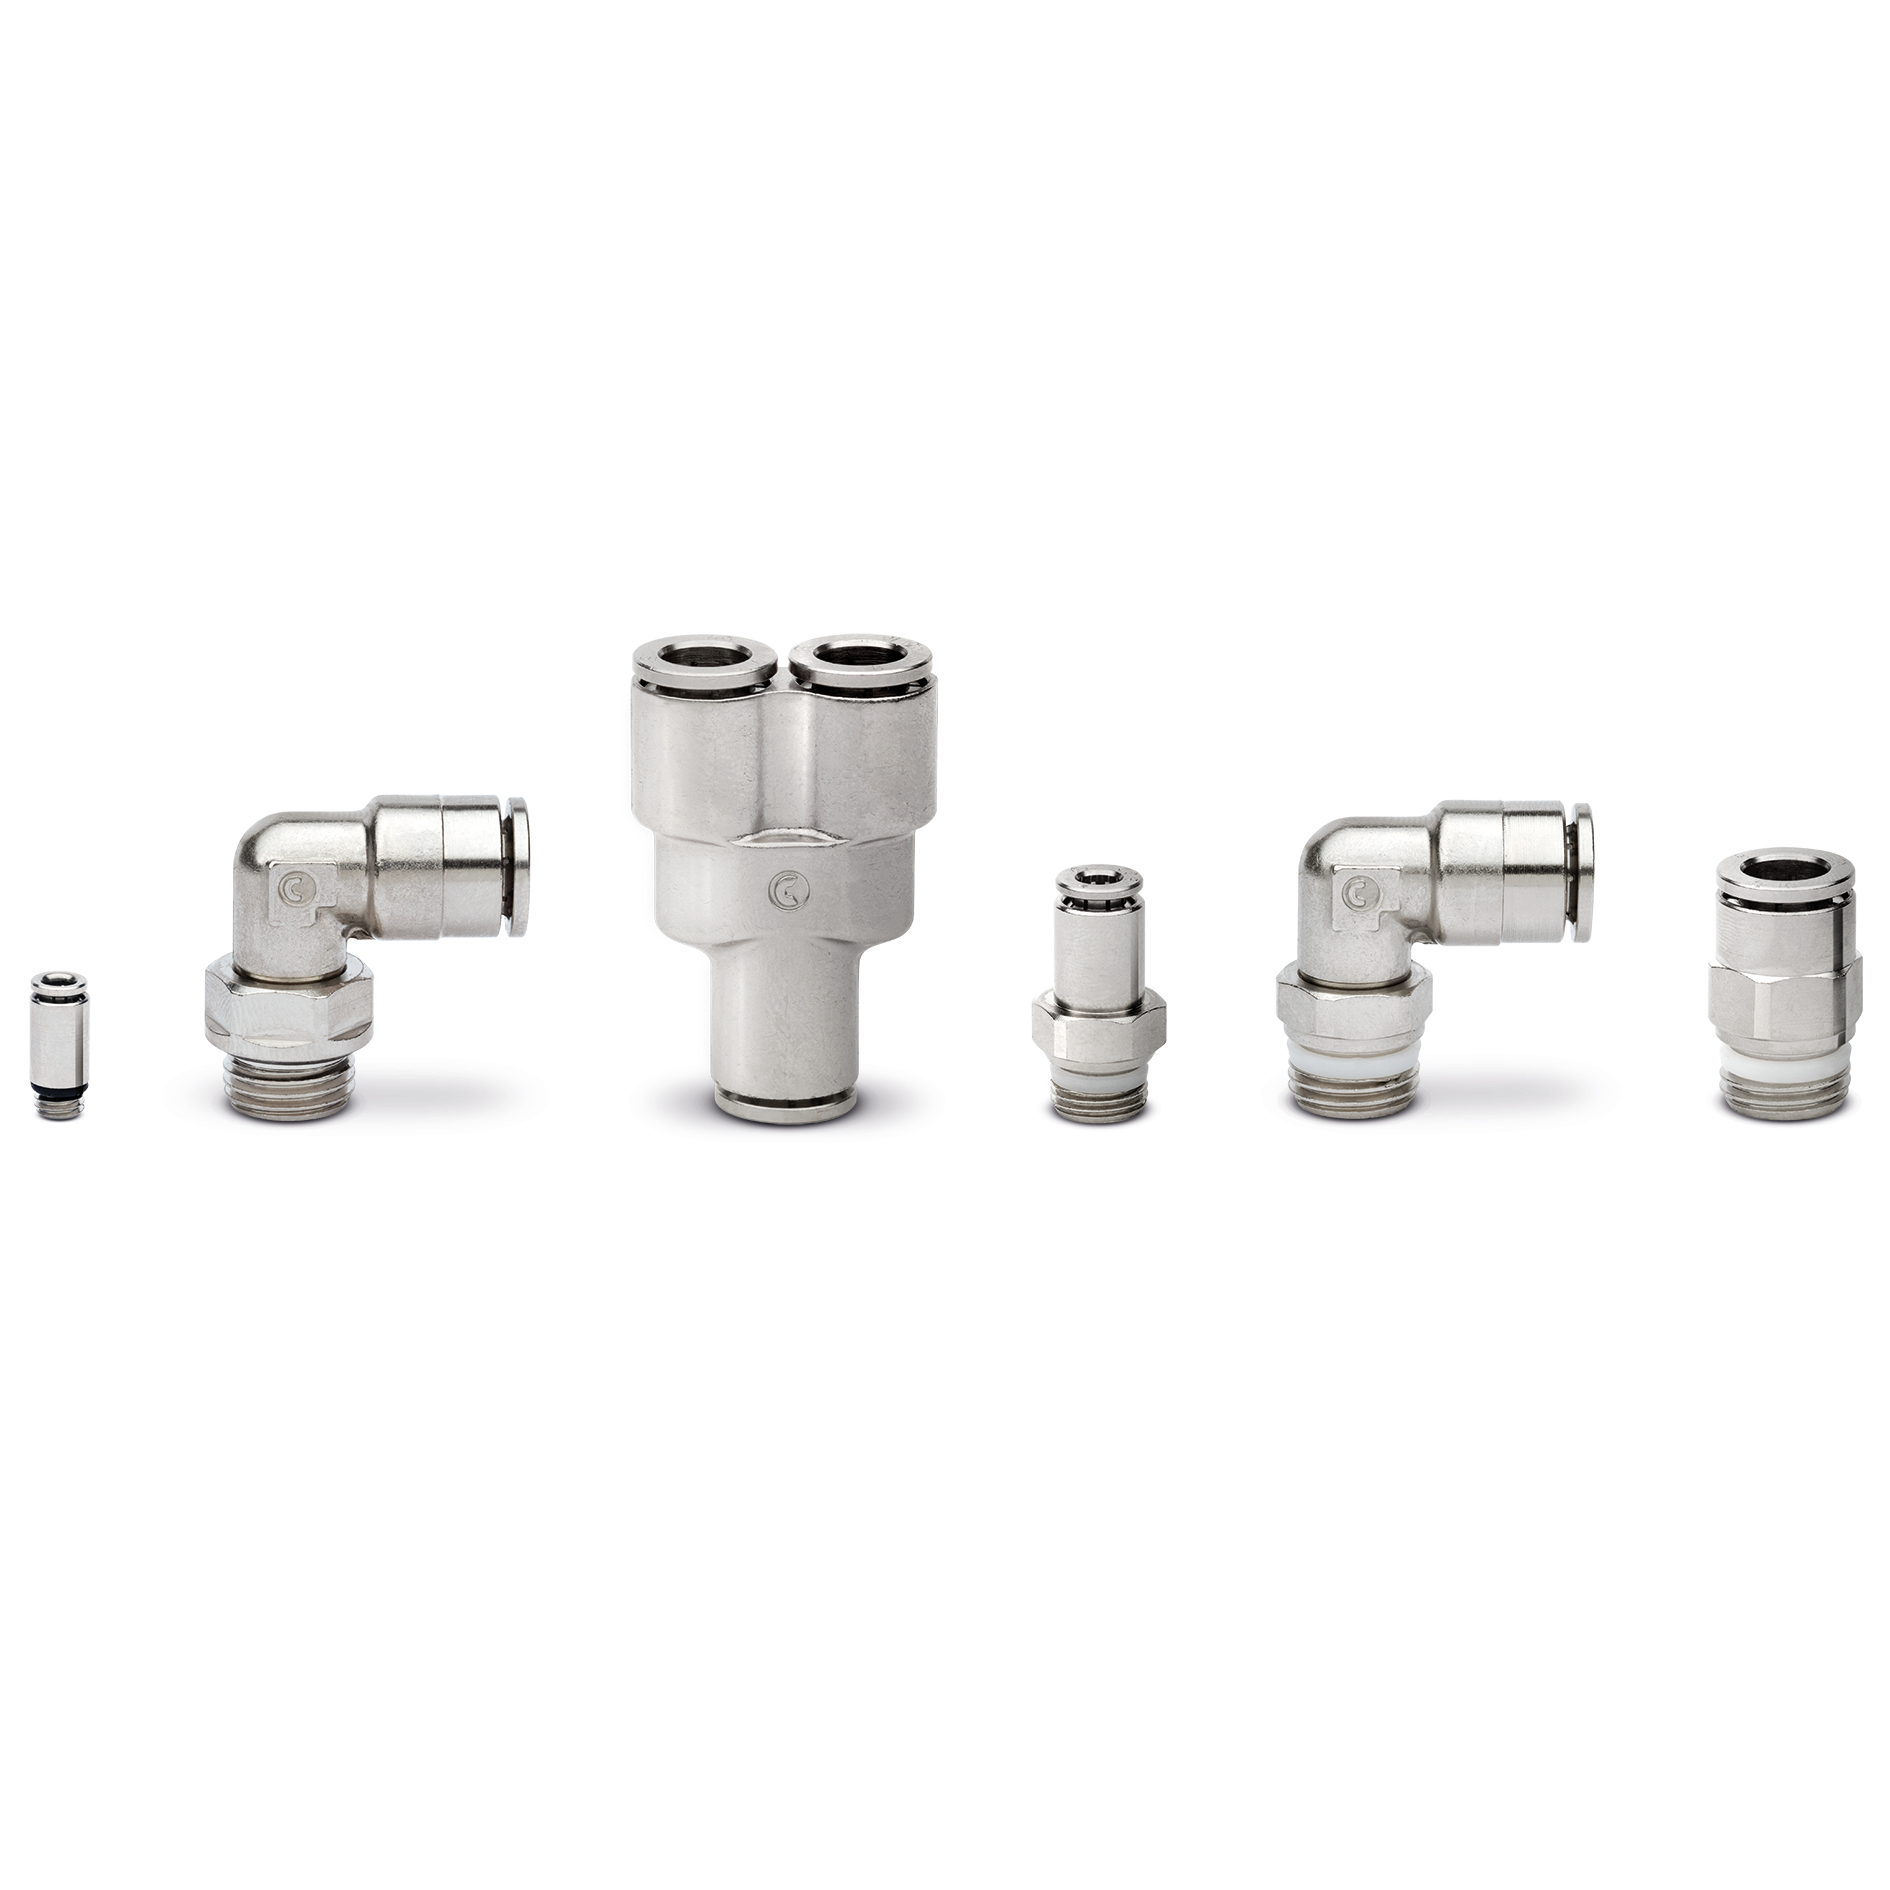 Series 6000 brass super-rapid fittings